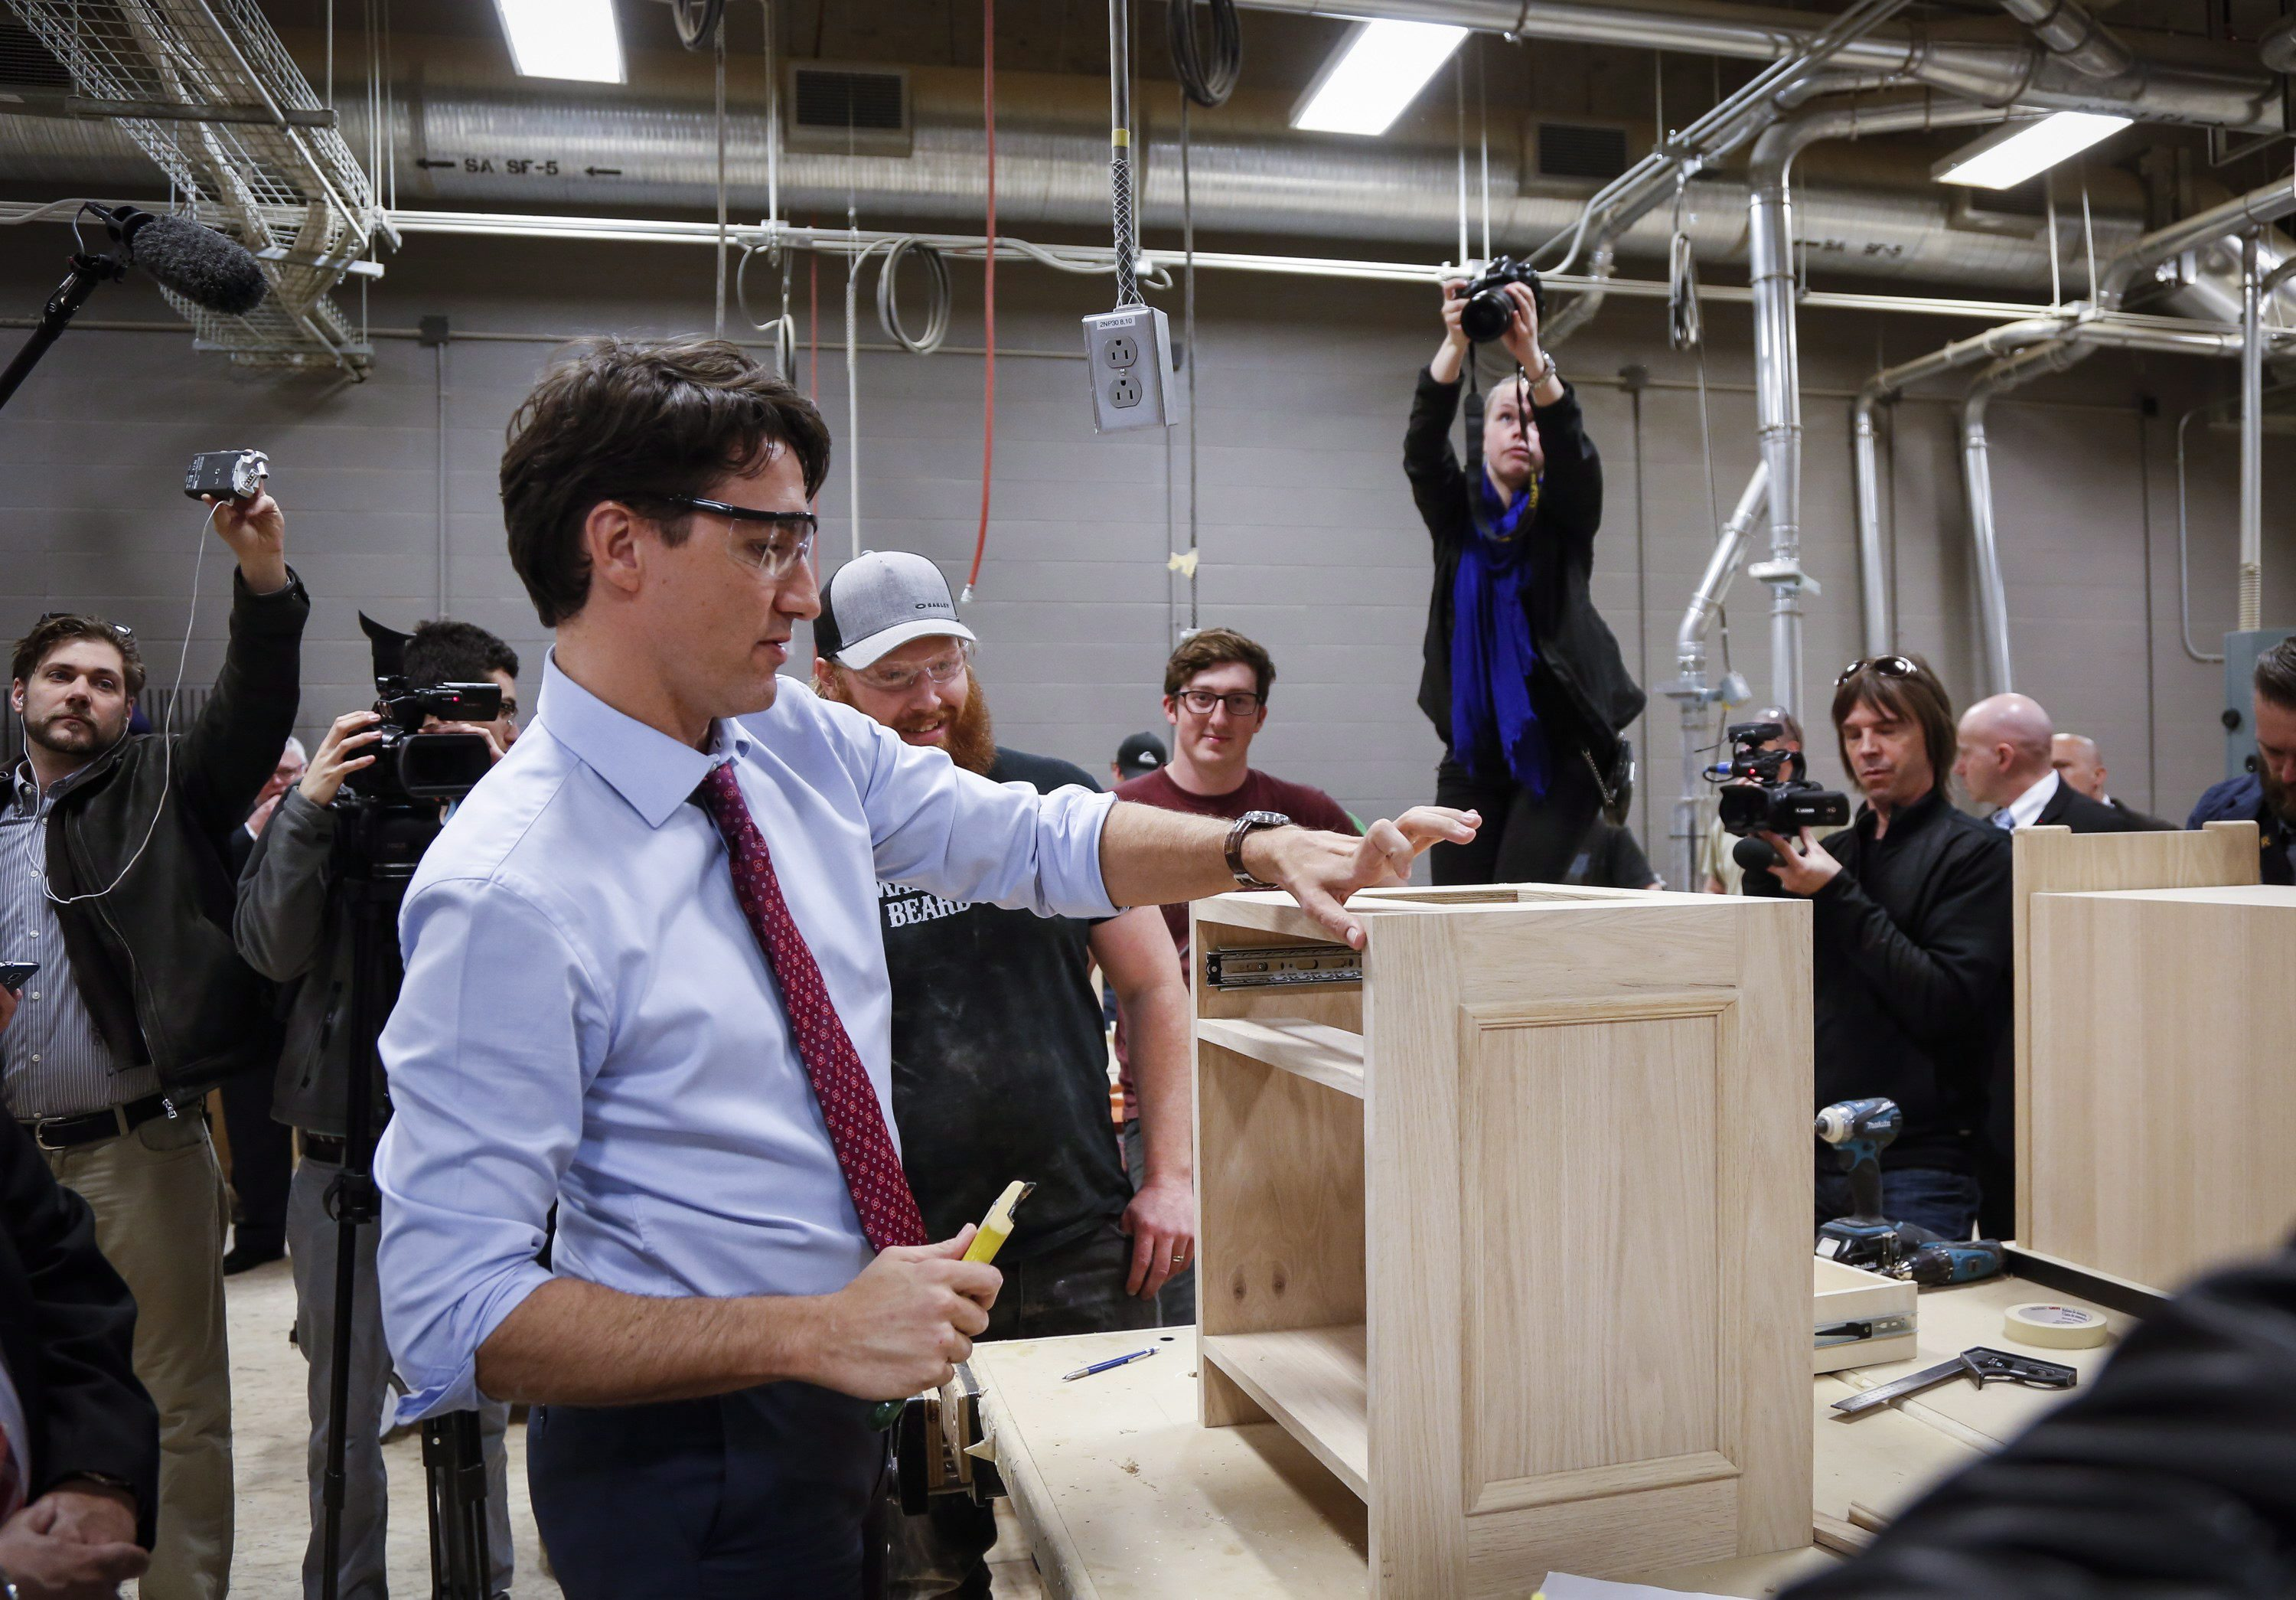 Key Trudeau promise to help jobless youth left out of federal budget